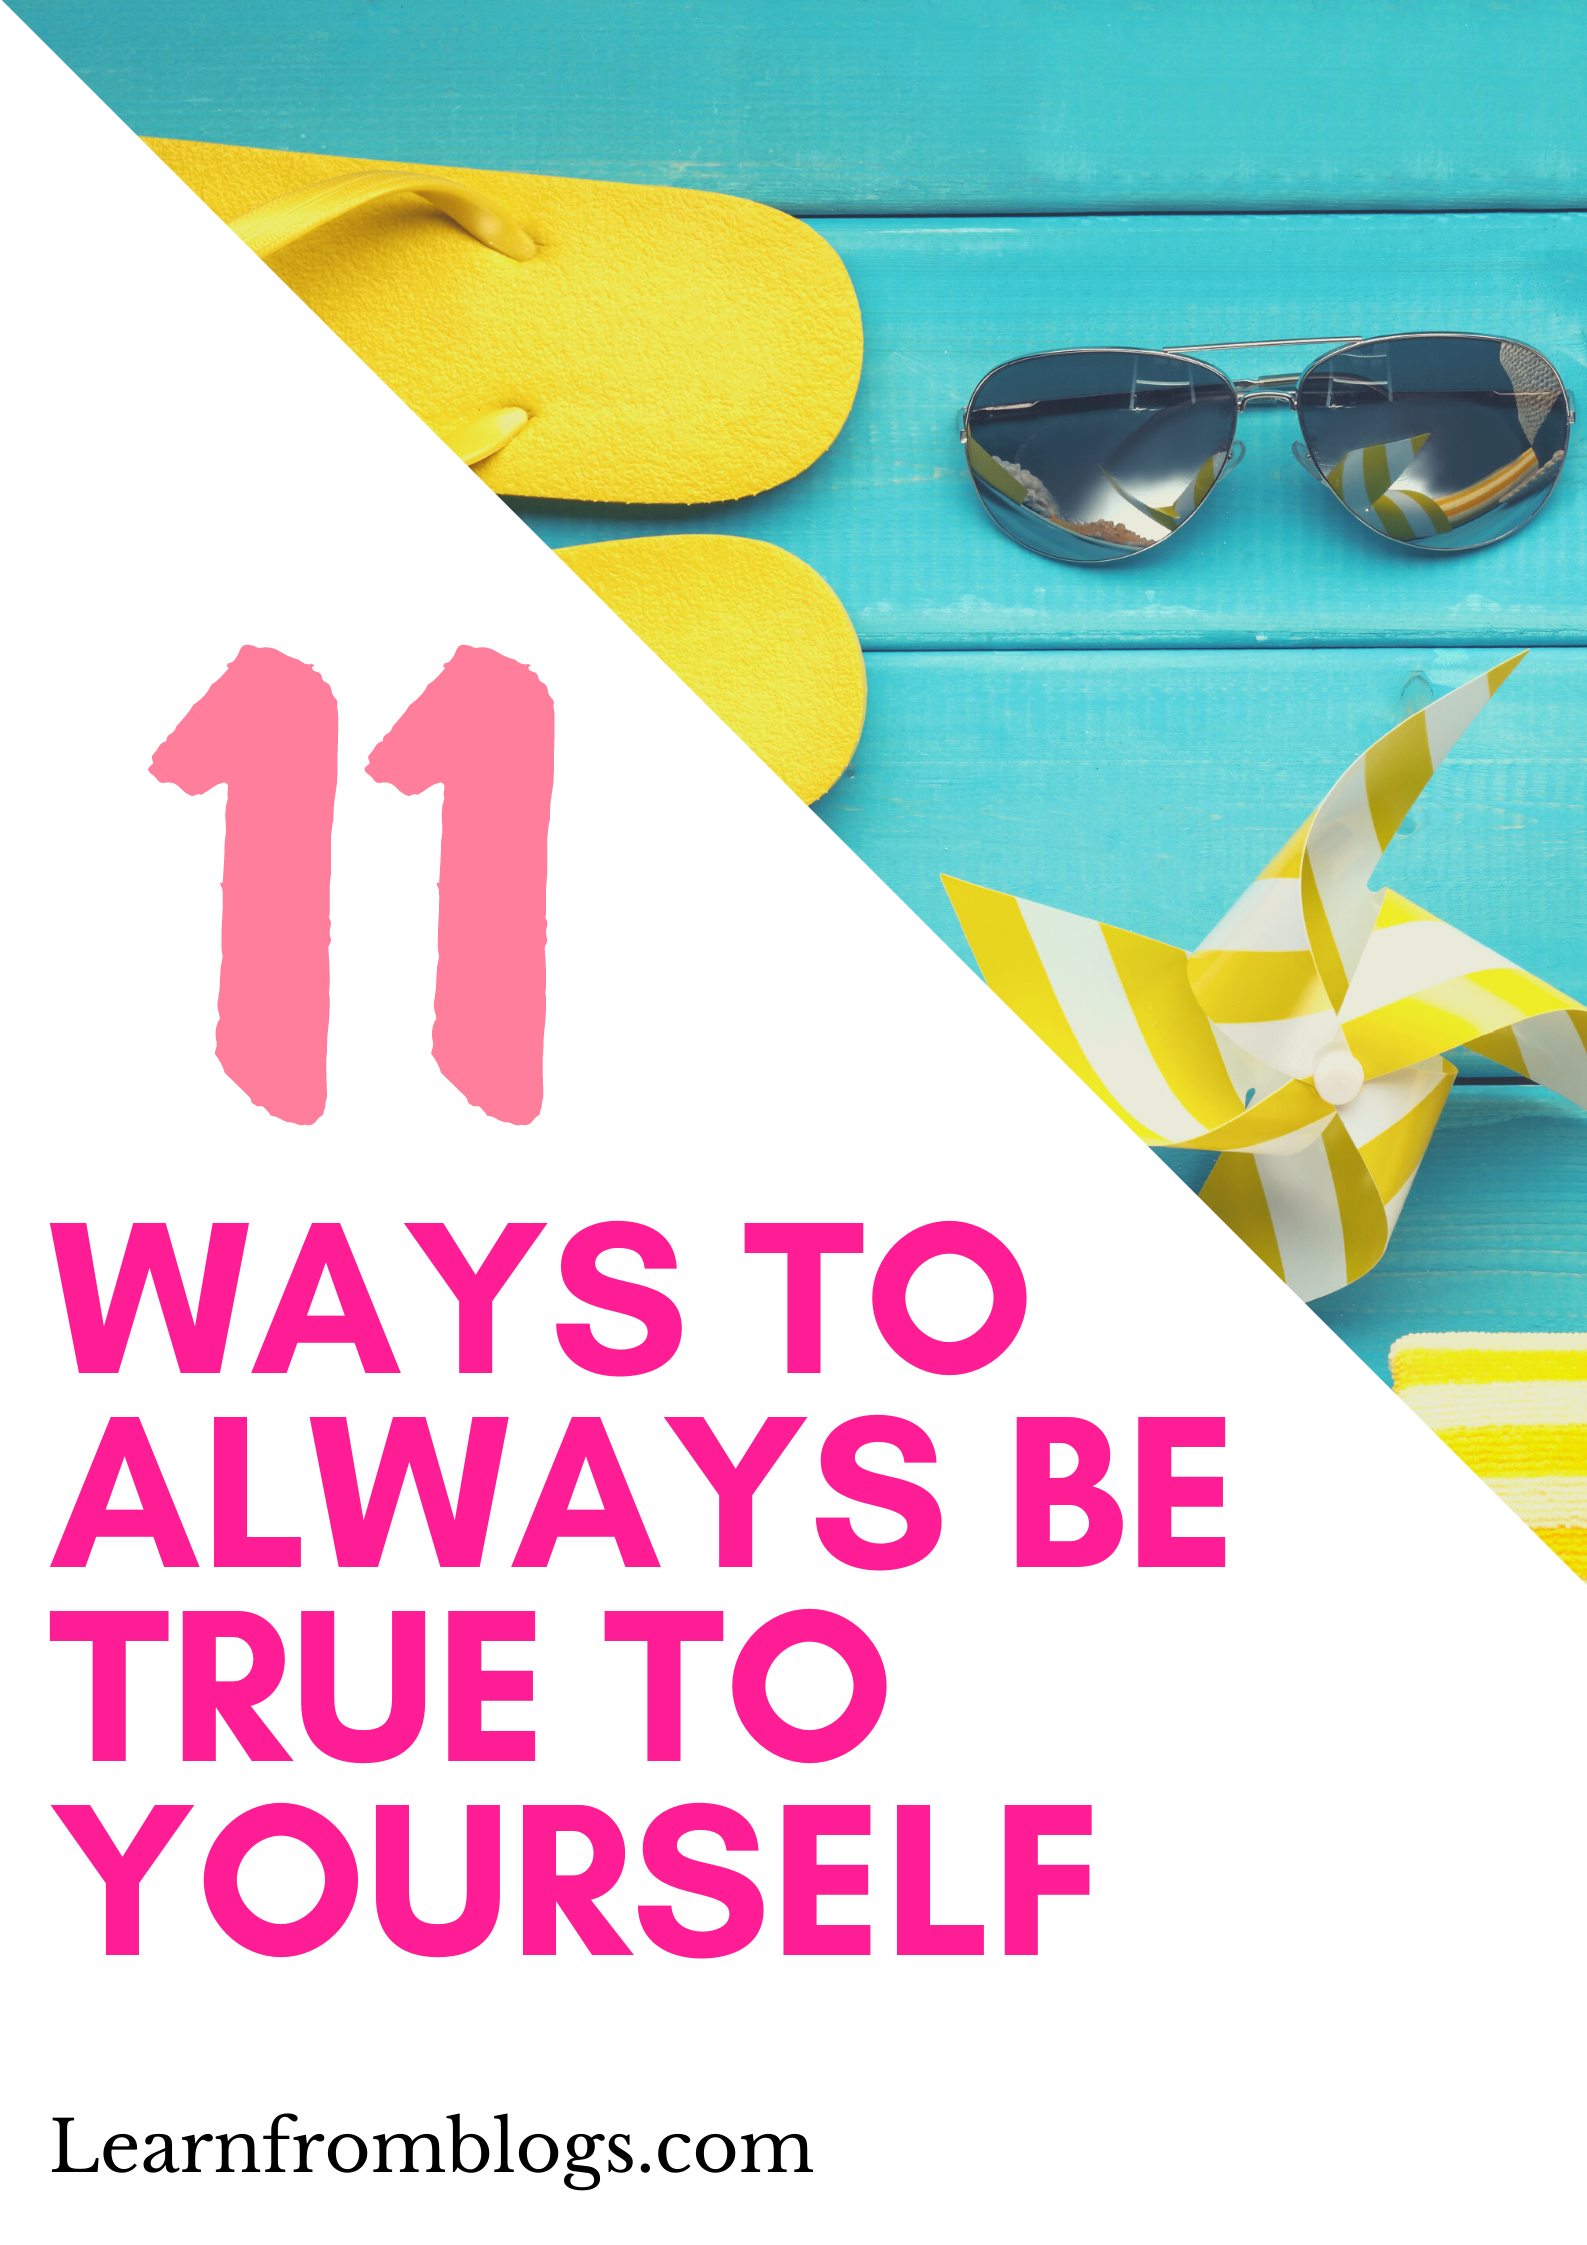 11 ways to always be true to yourself.png